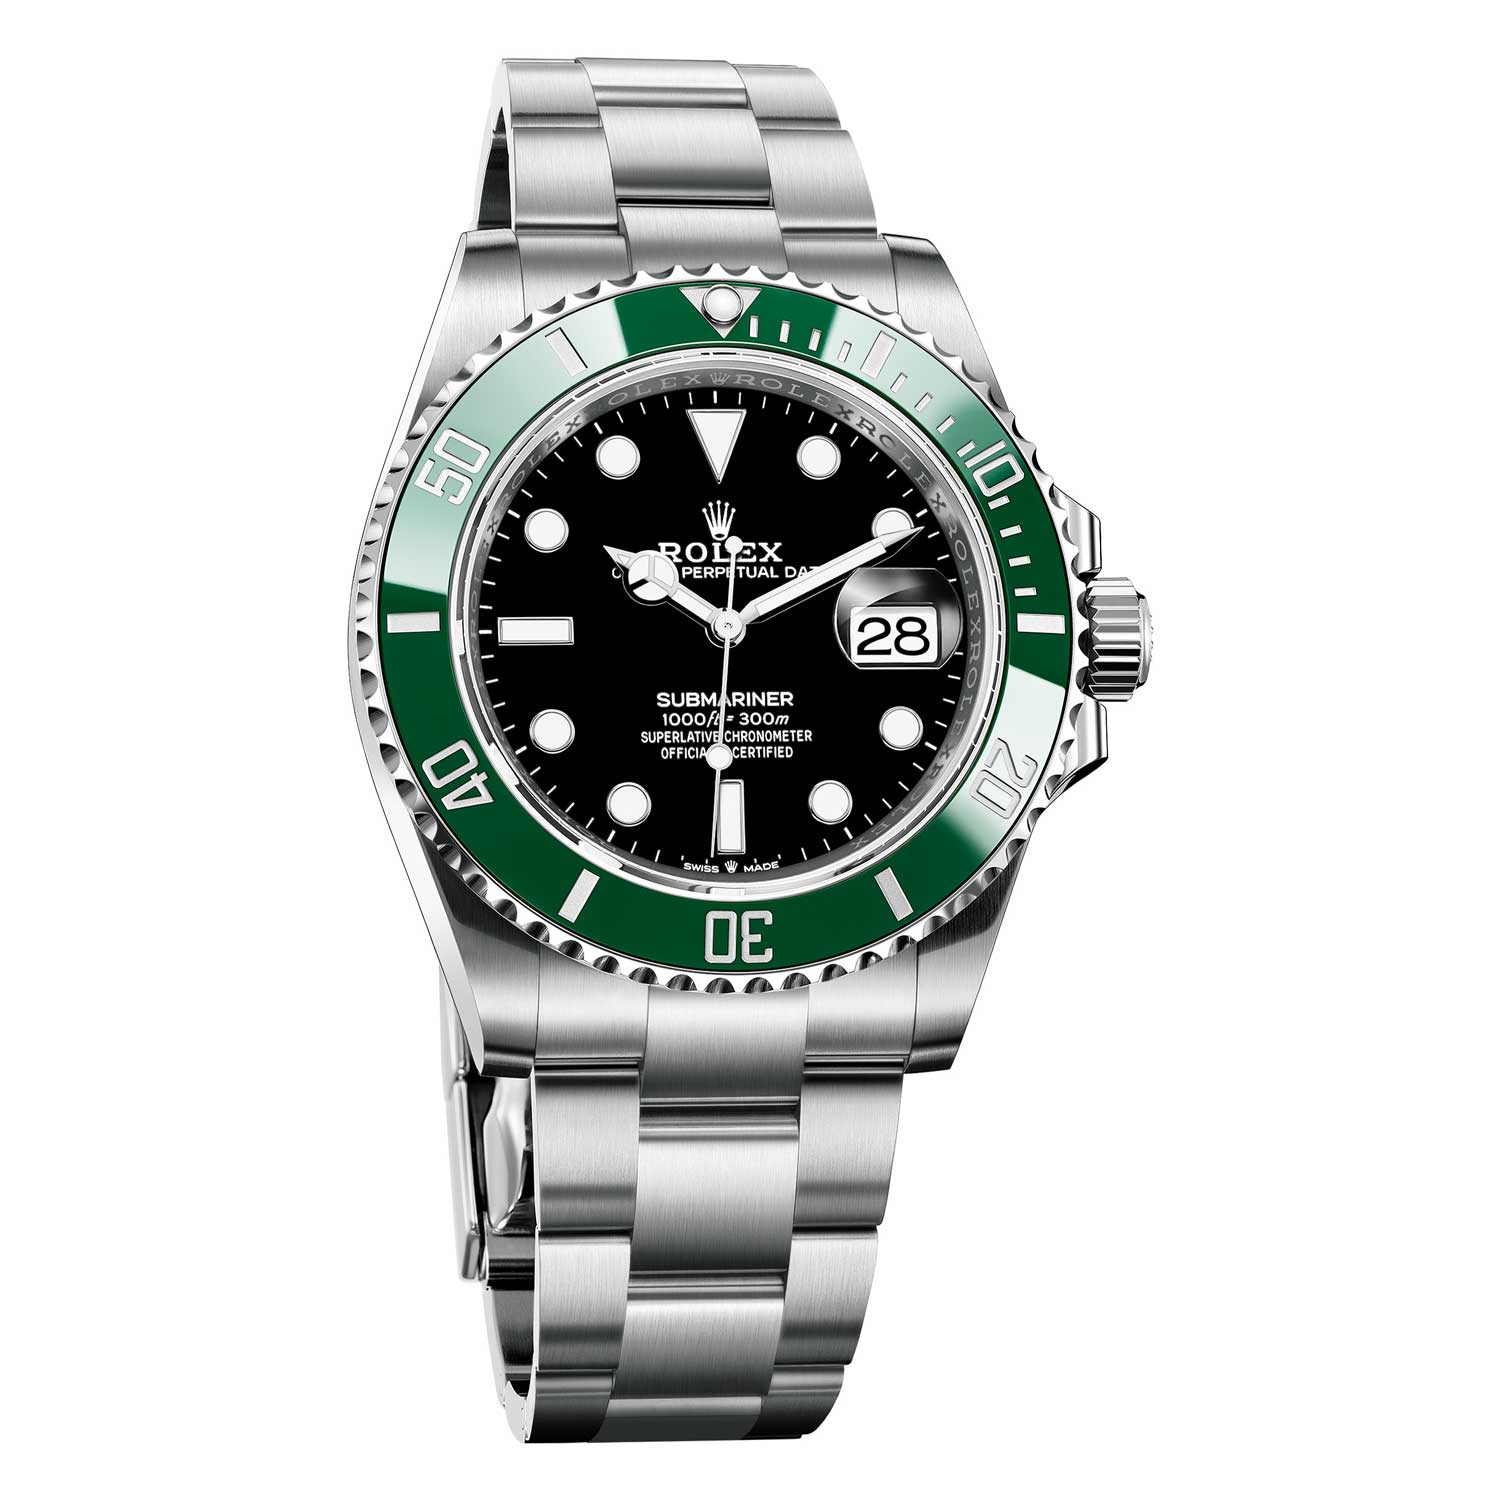 The 2020 Oyster Perpetual Submariner Date in Oystersteel ref. 126610LV